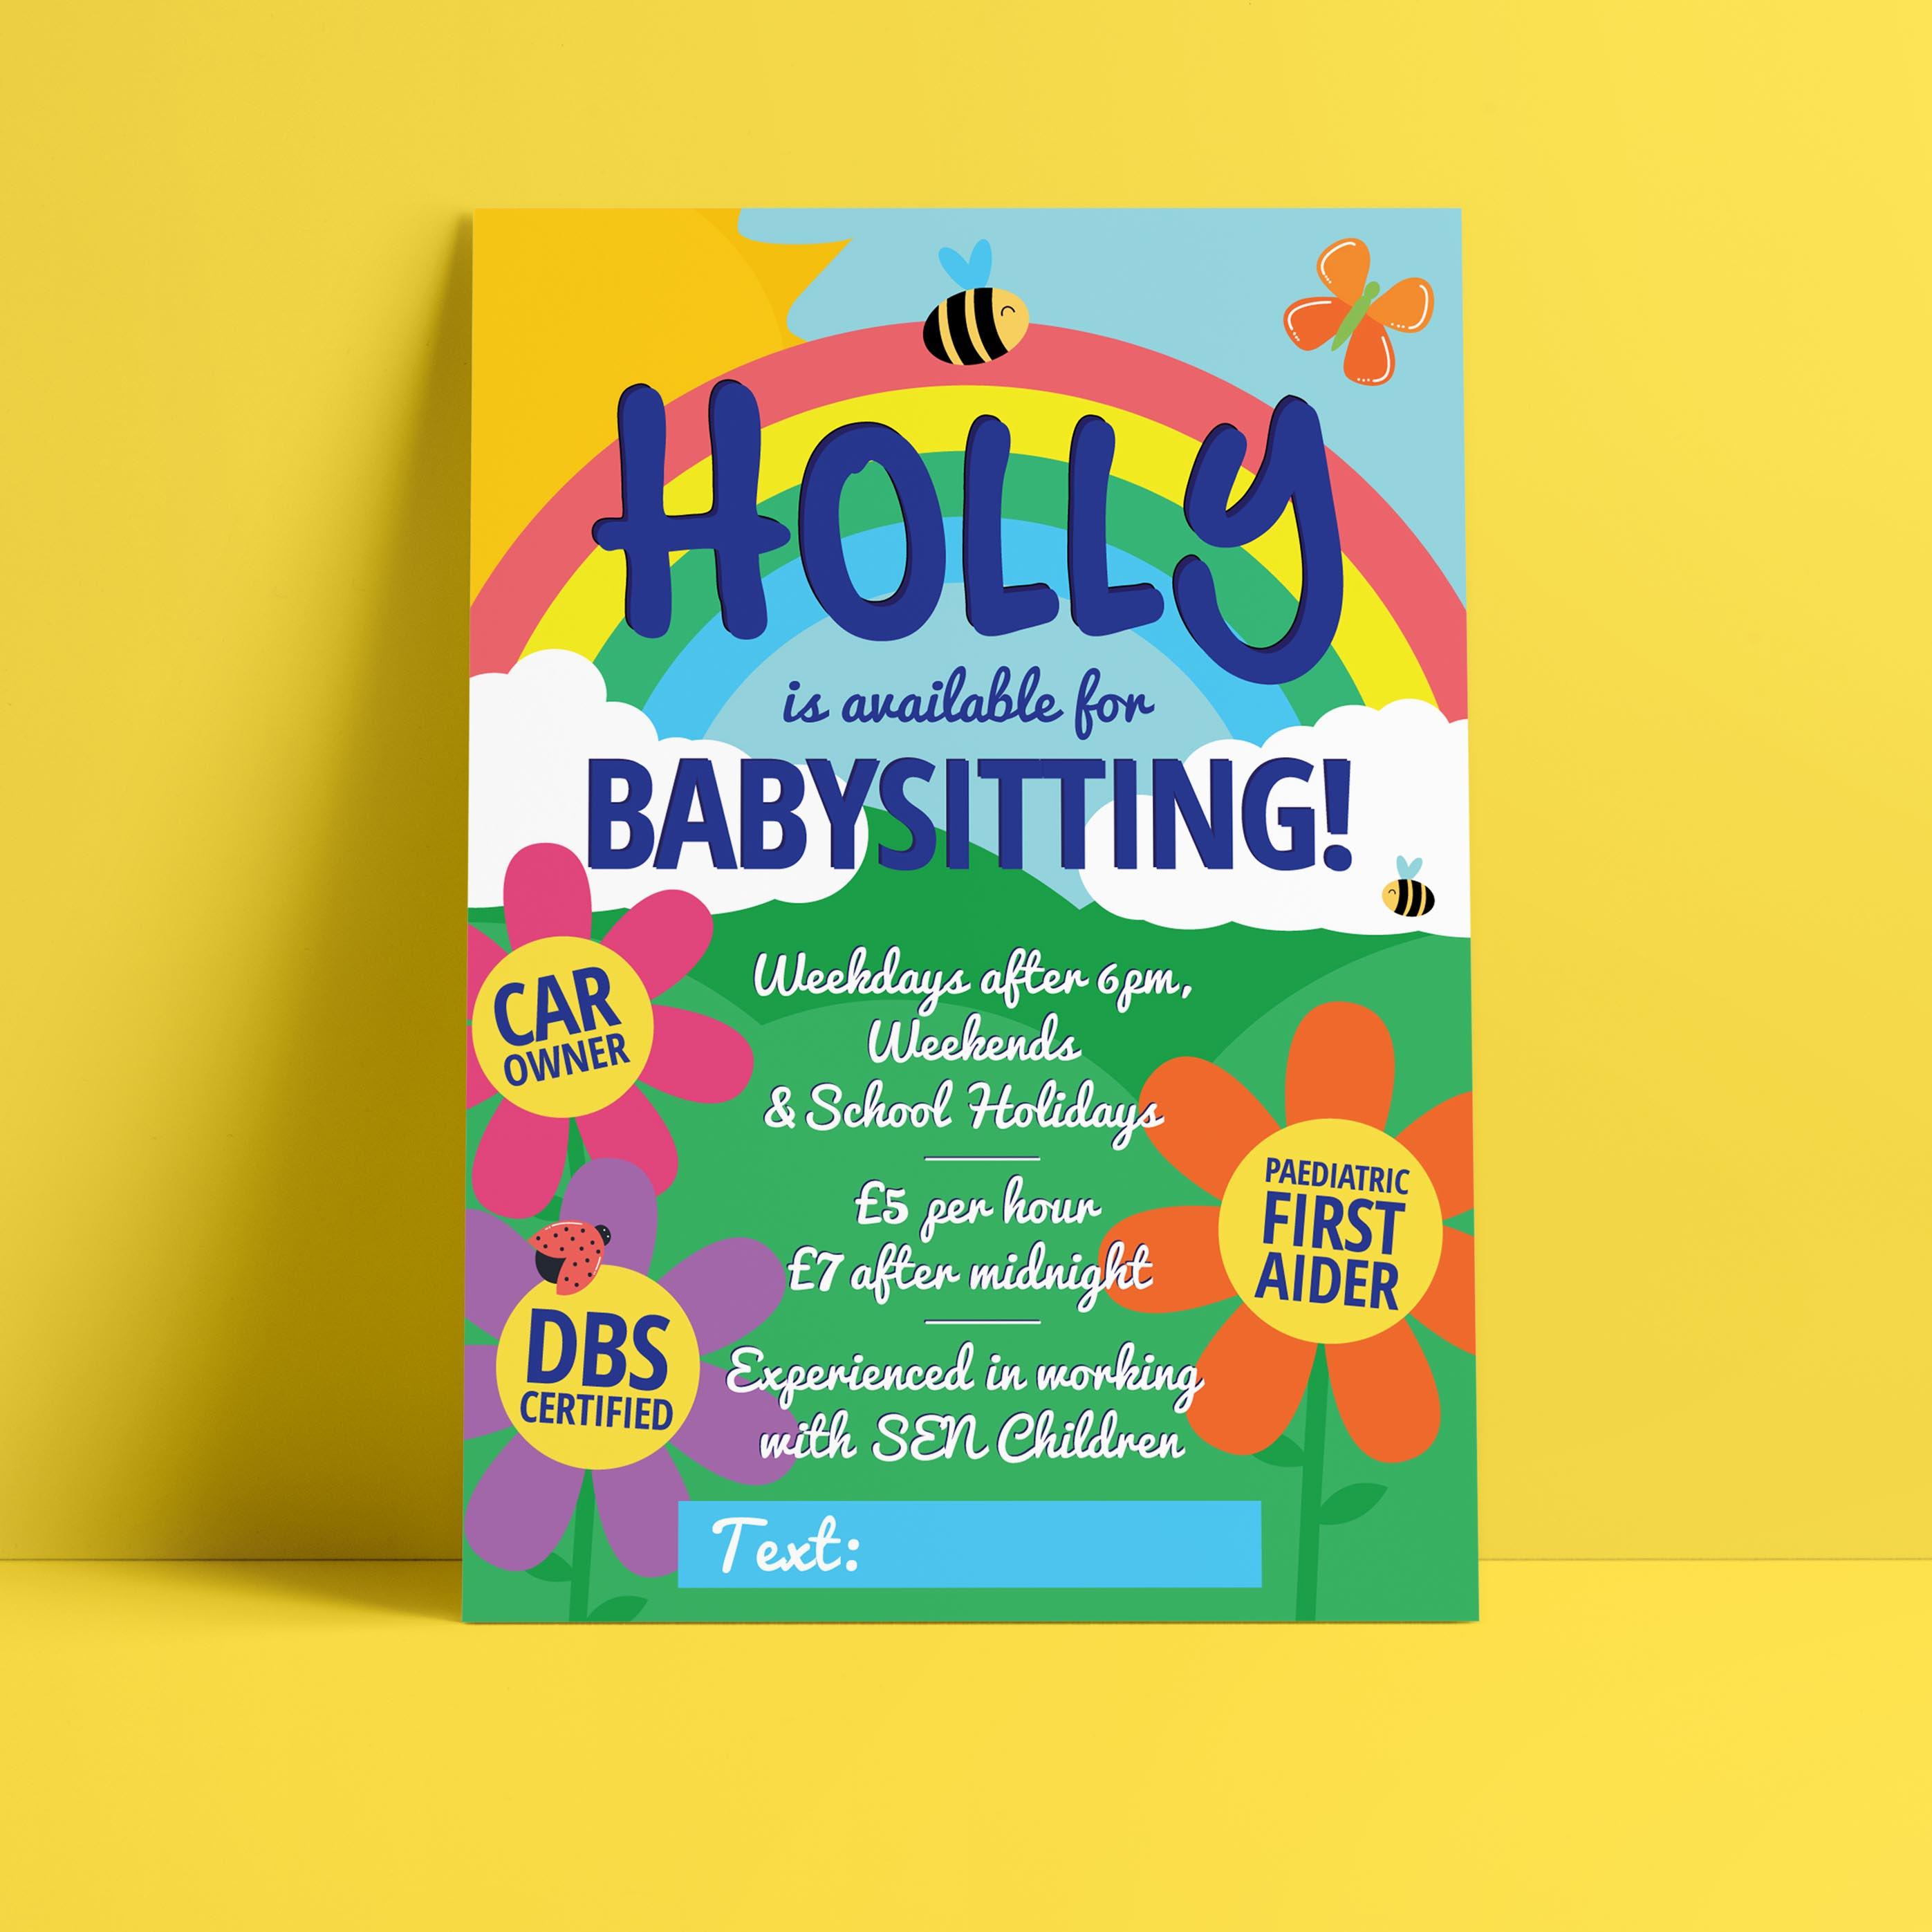 Bumble Babysitting Leaflet Design